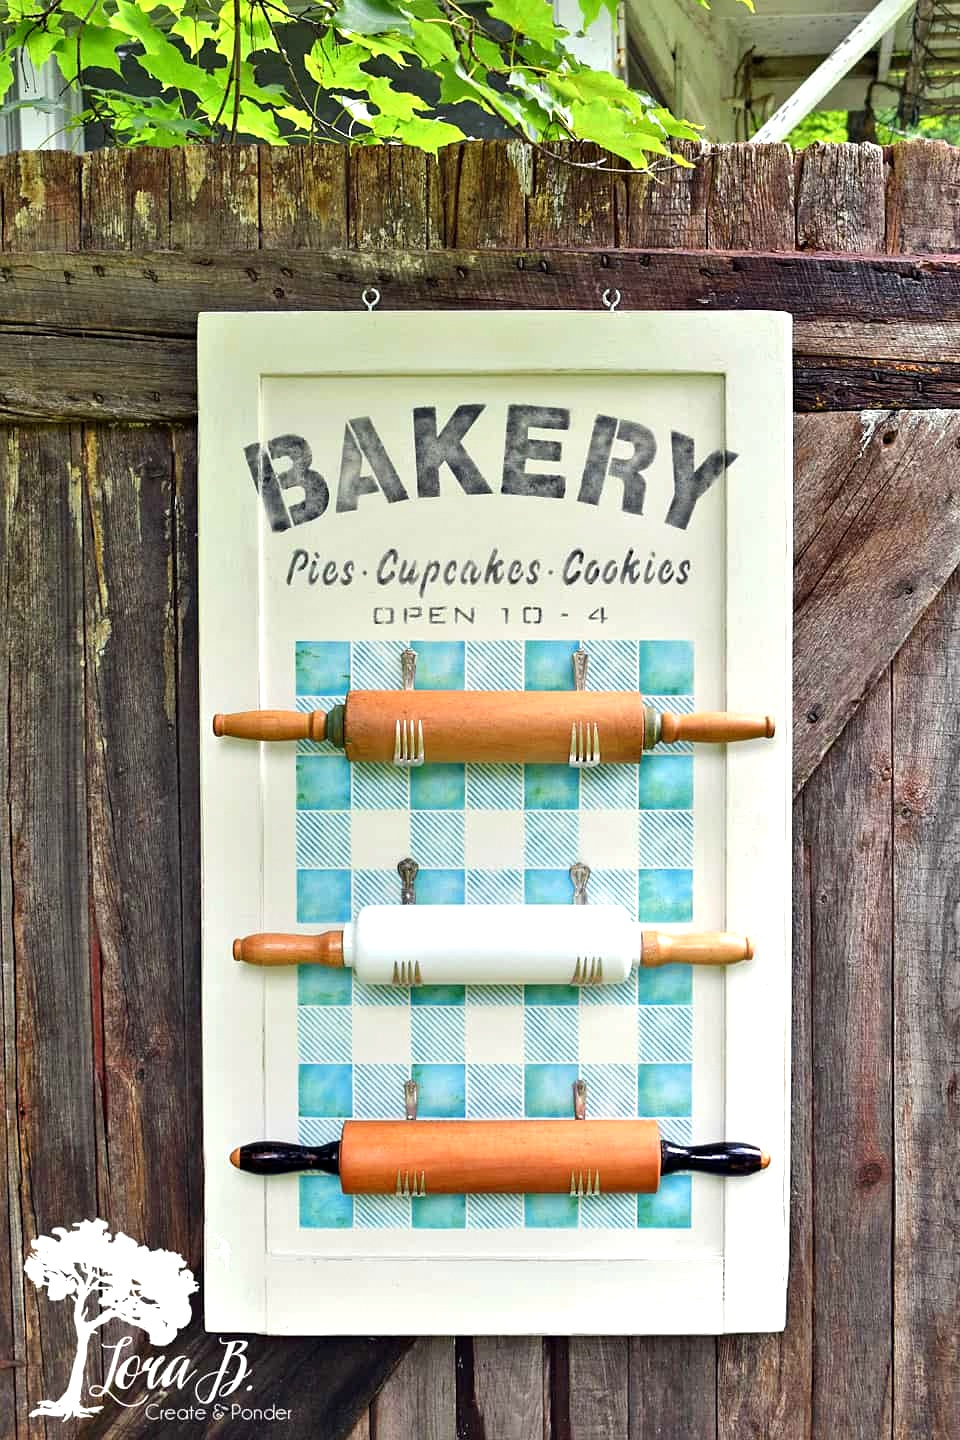 Bakery sign with vintage rolling pin display by Lora B, featured on Funky Junk Interiors